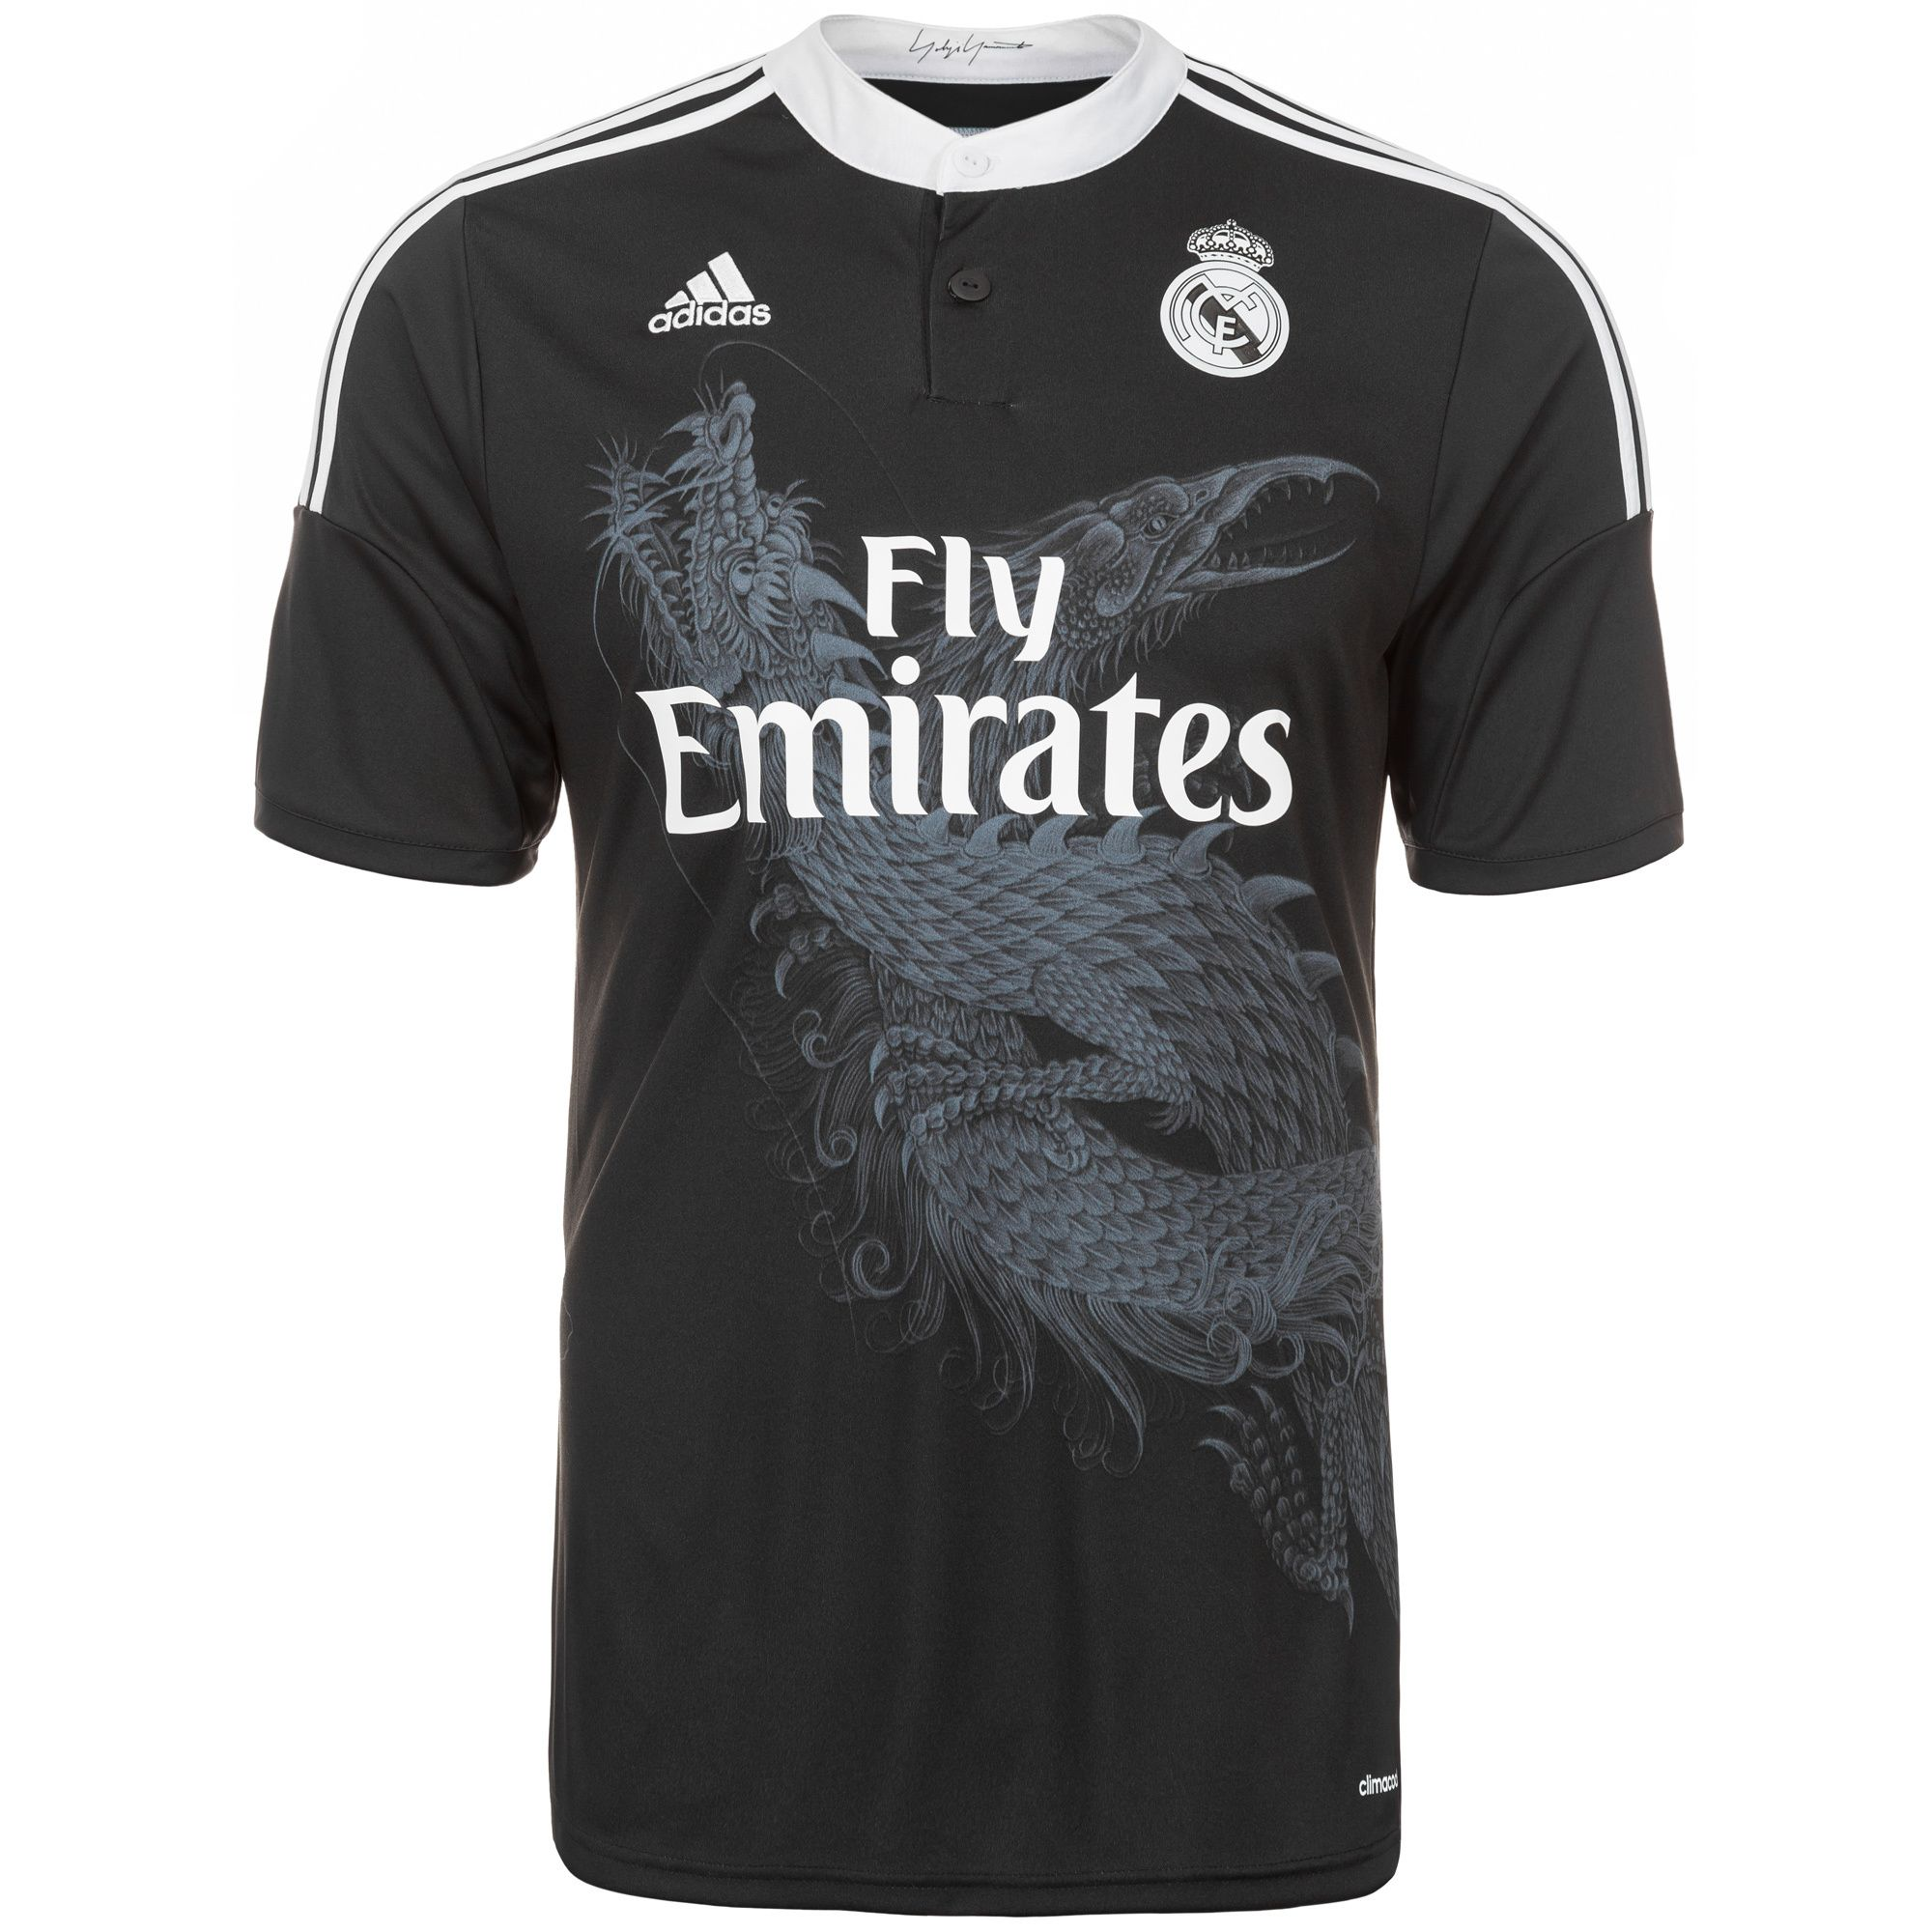 Men's 2014/15 Real Madrid FIFA Club World Cup Ronaldo 7 UCL Soccer Jersey